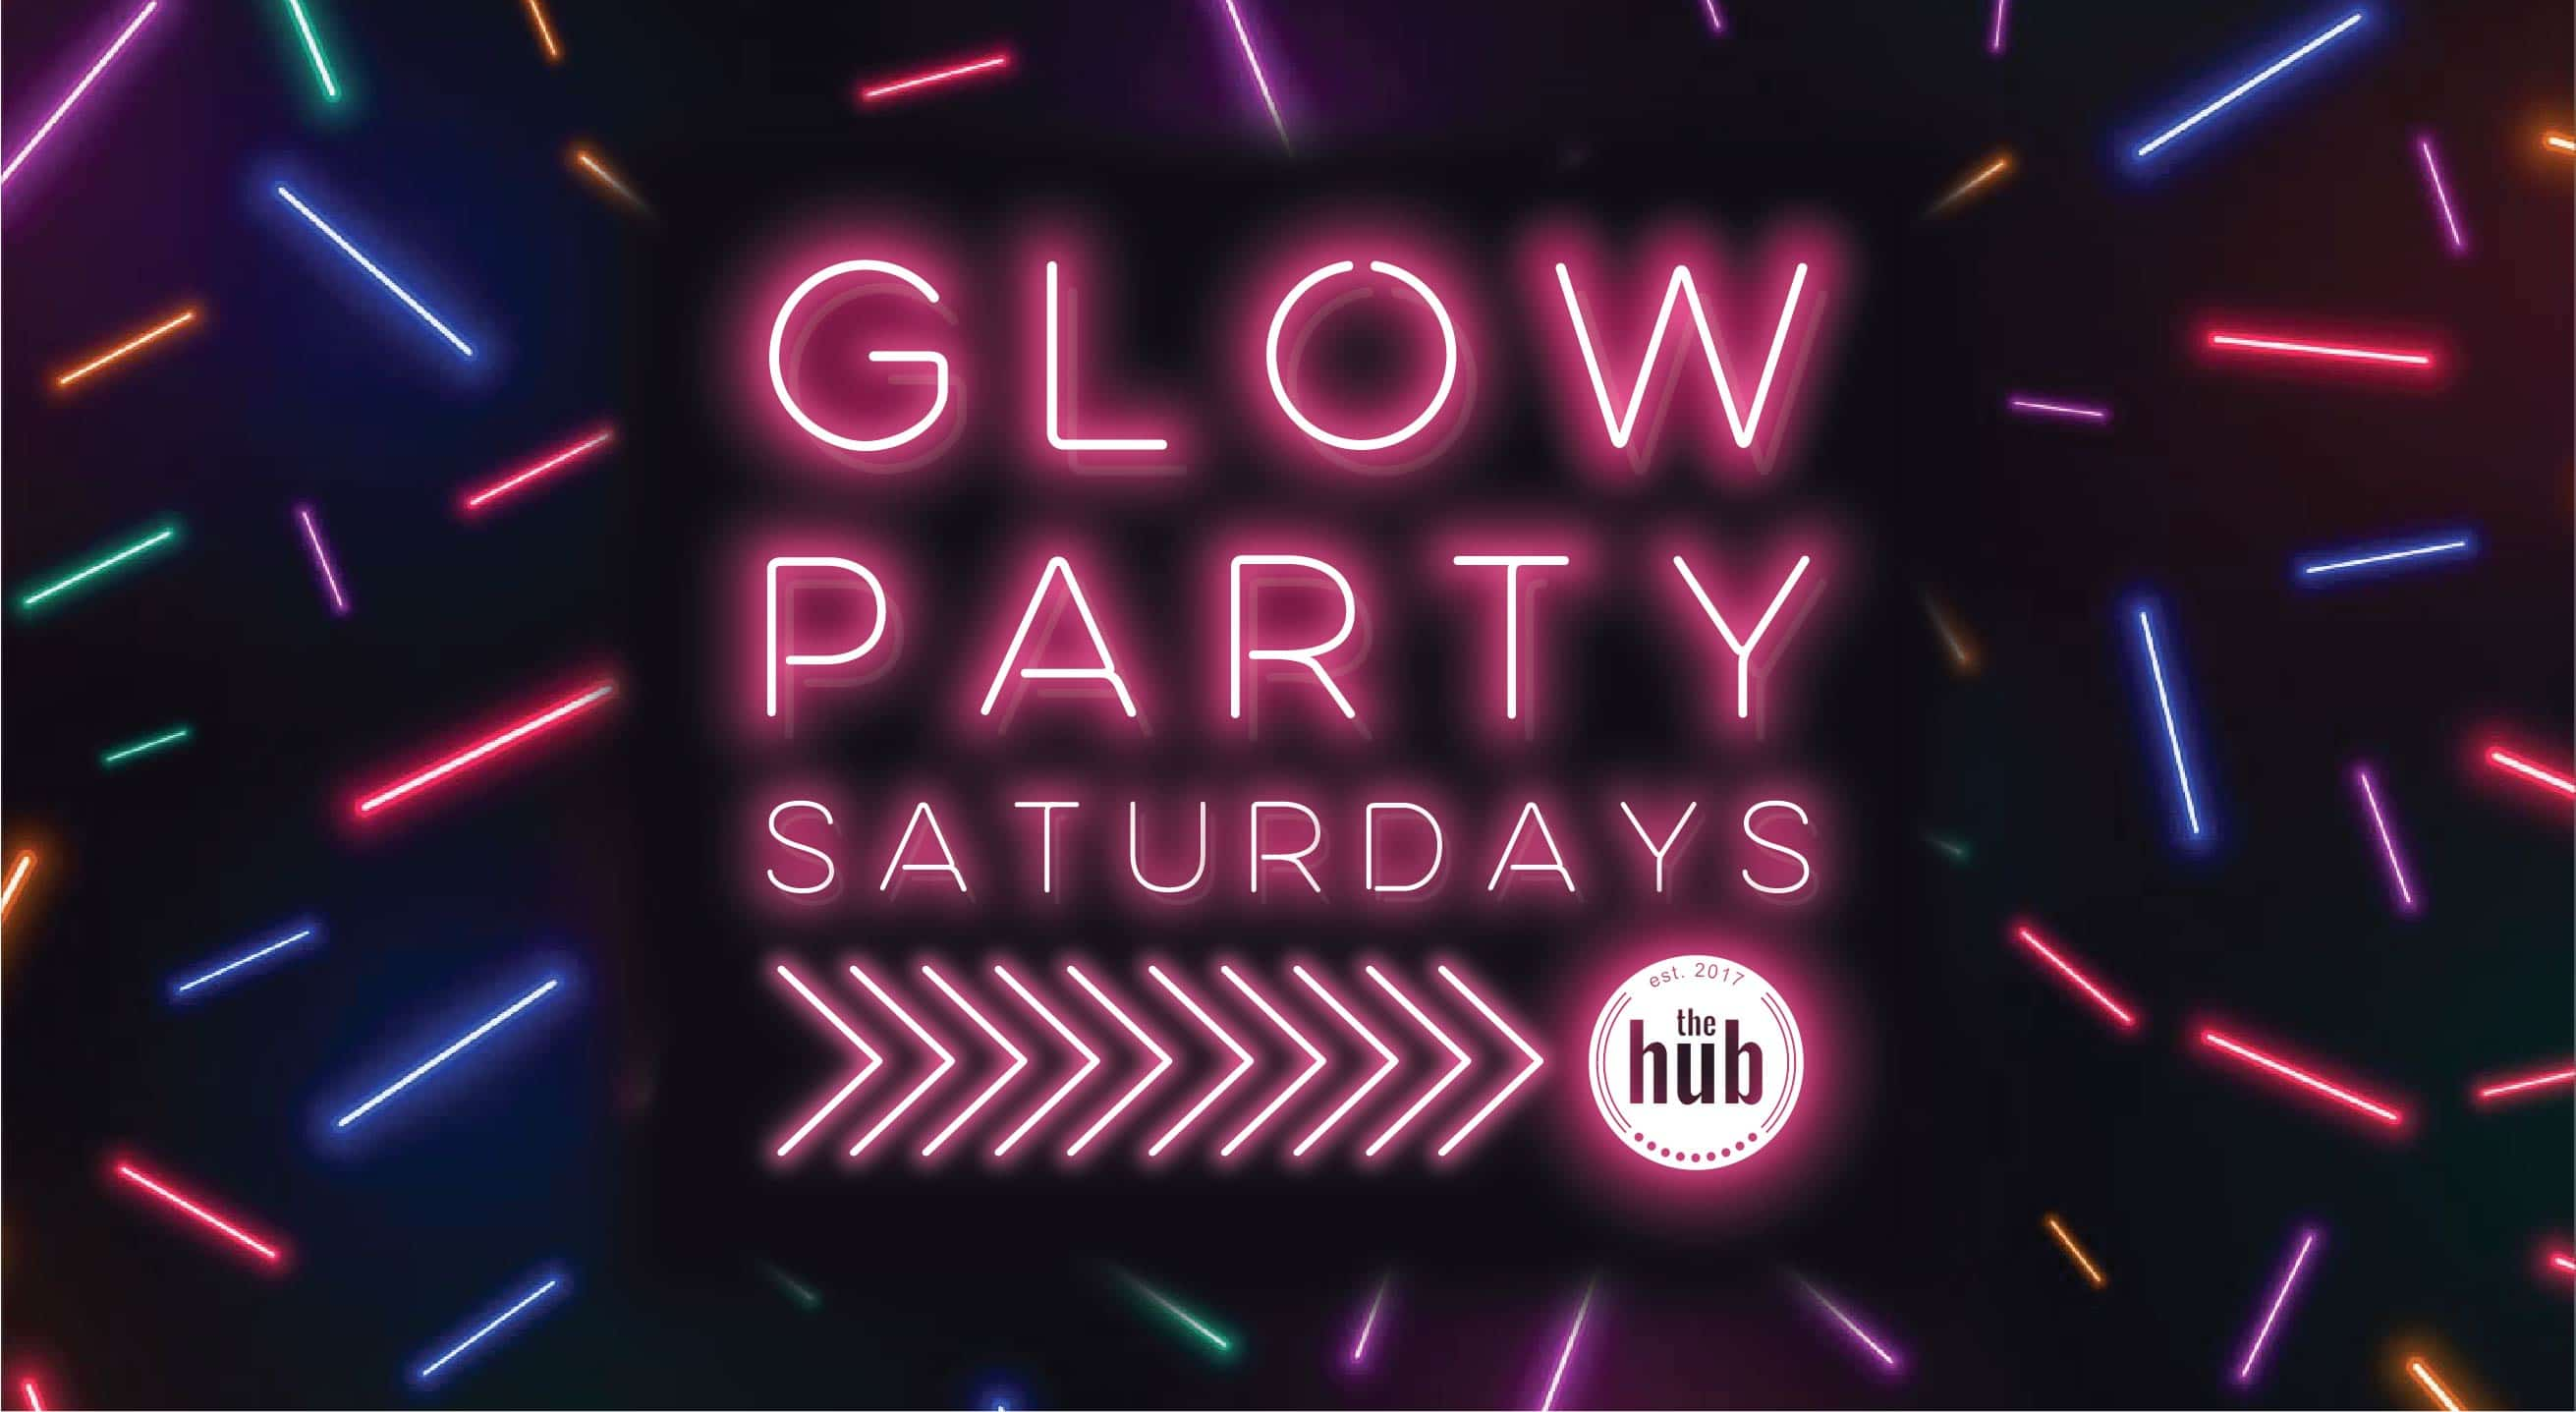 GLOW PARTY SATURDAYS AT THE HUB